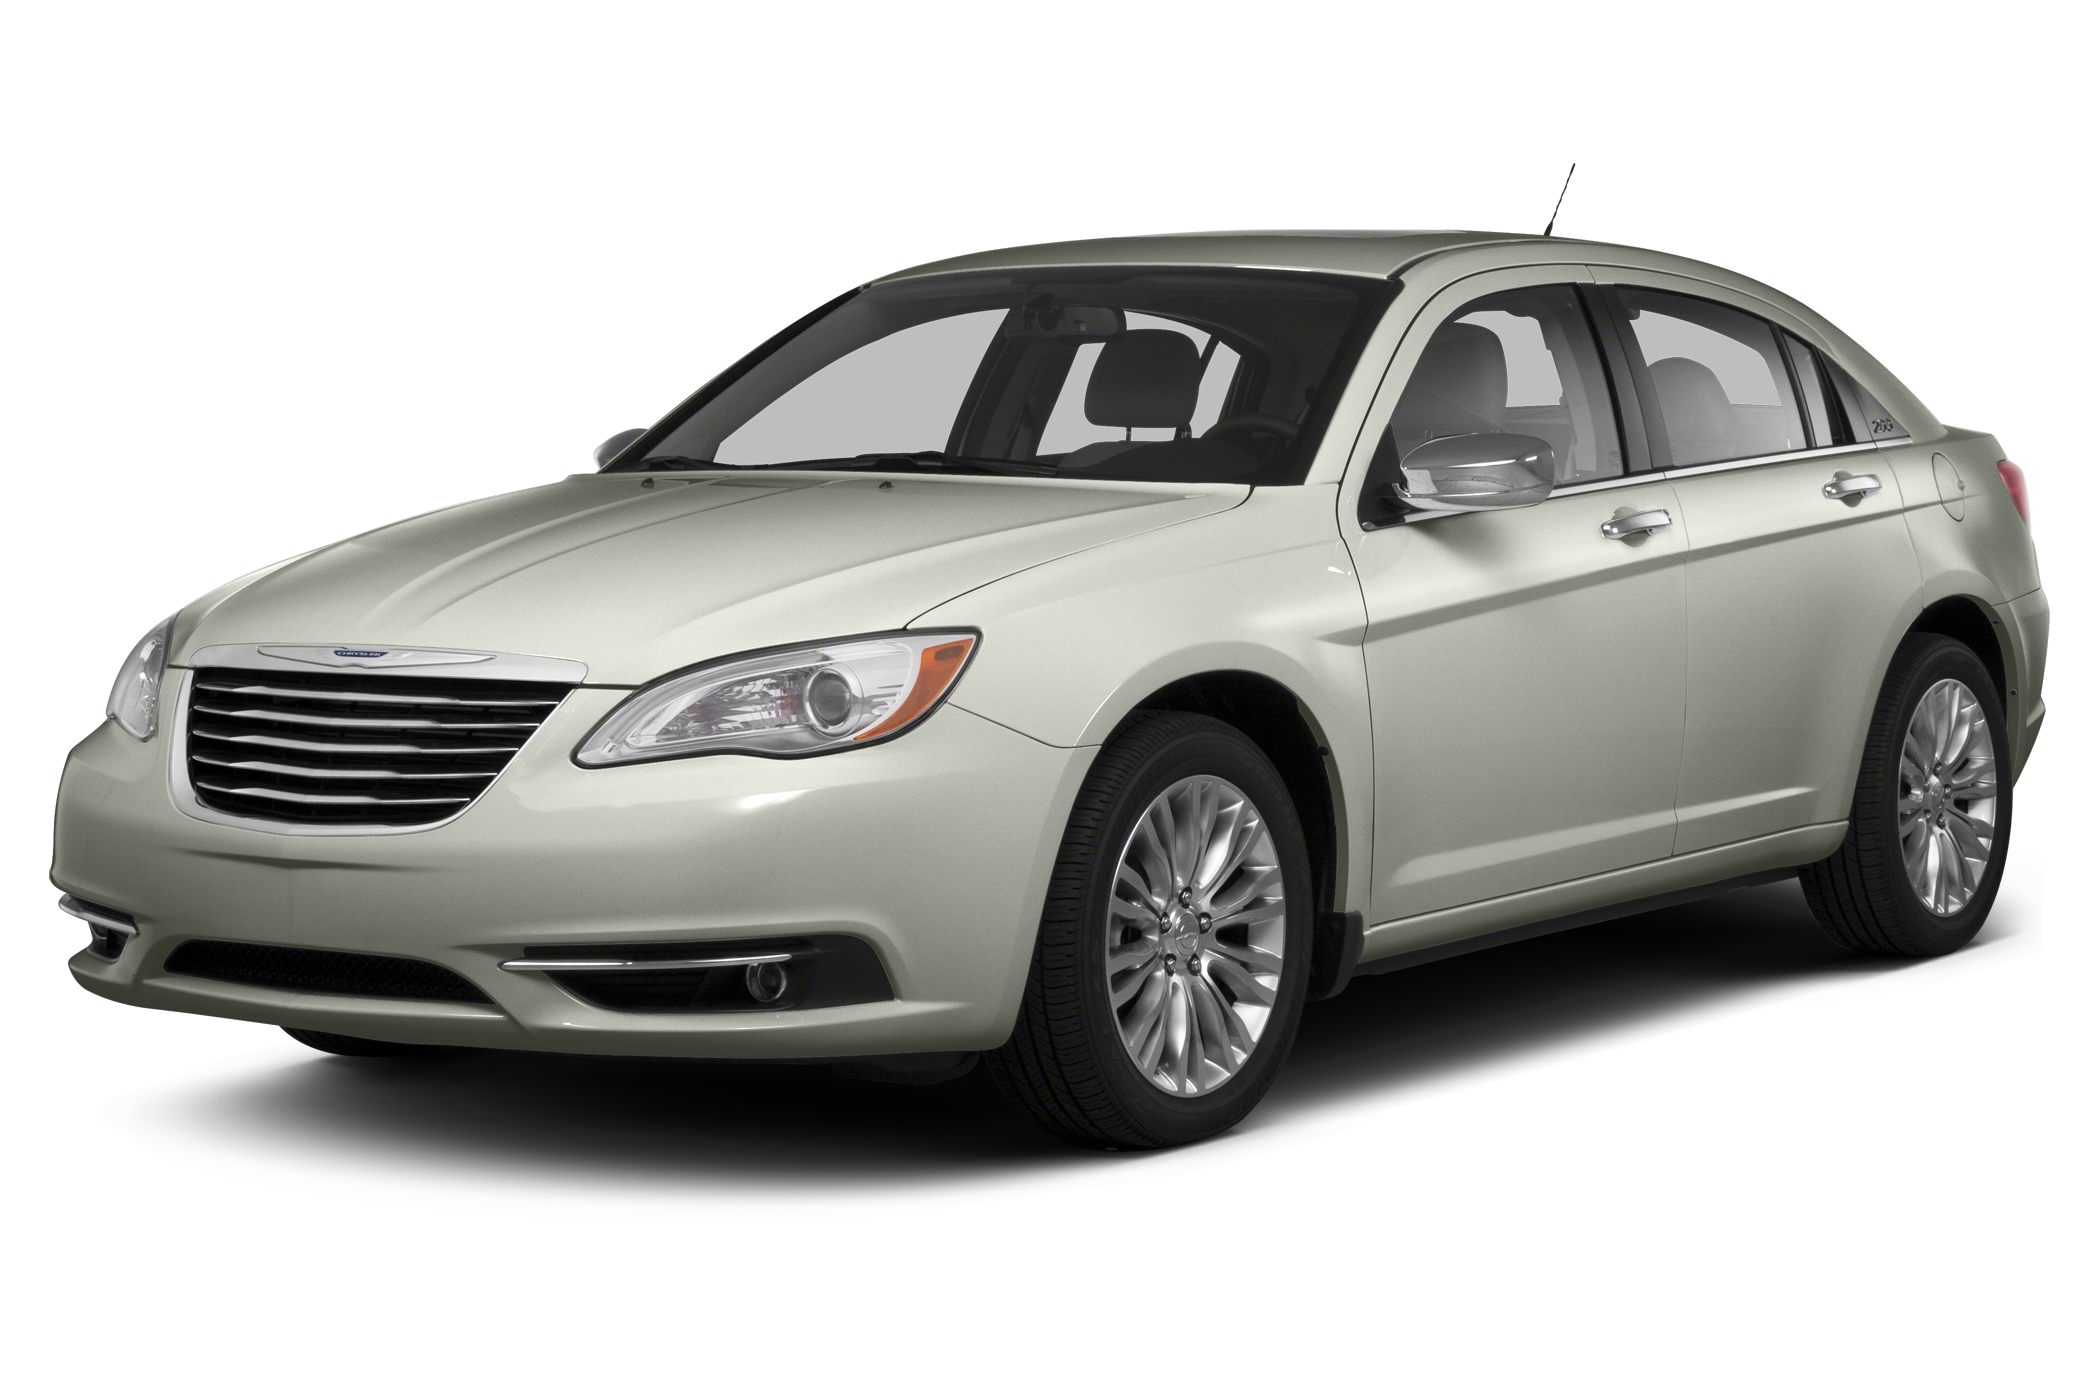 2013 Chrysler 200 LX Sedan for sale in Springfield for $14,997 with 43,475 miles.